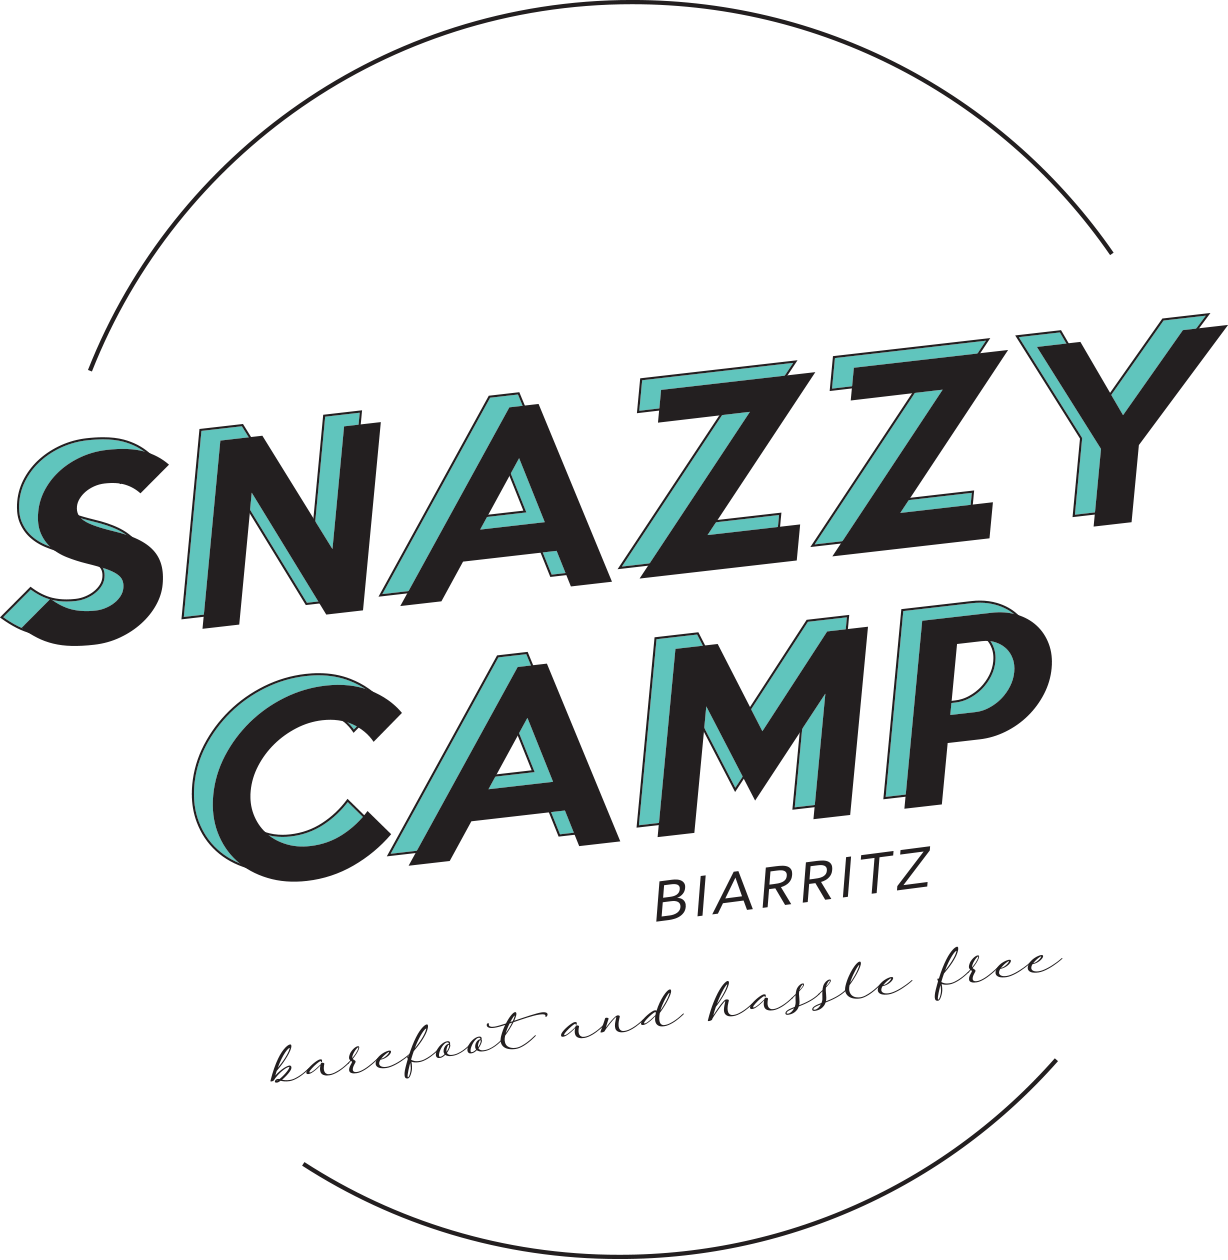 Snazzy Camp